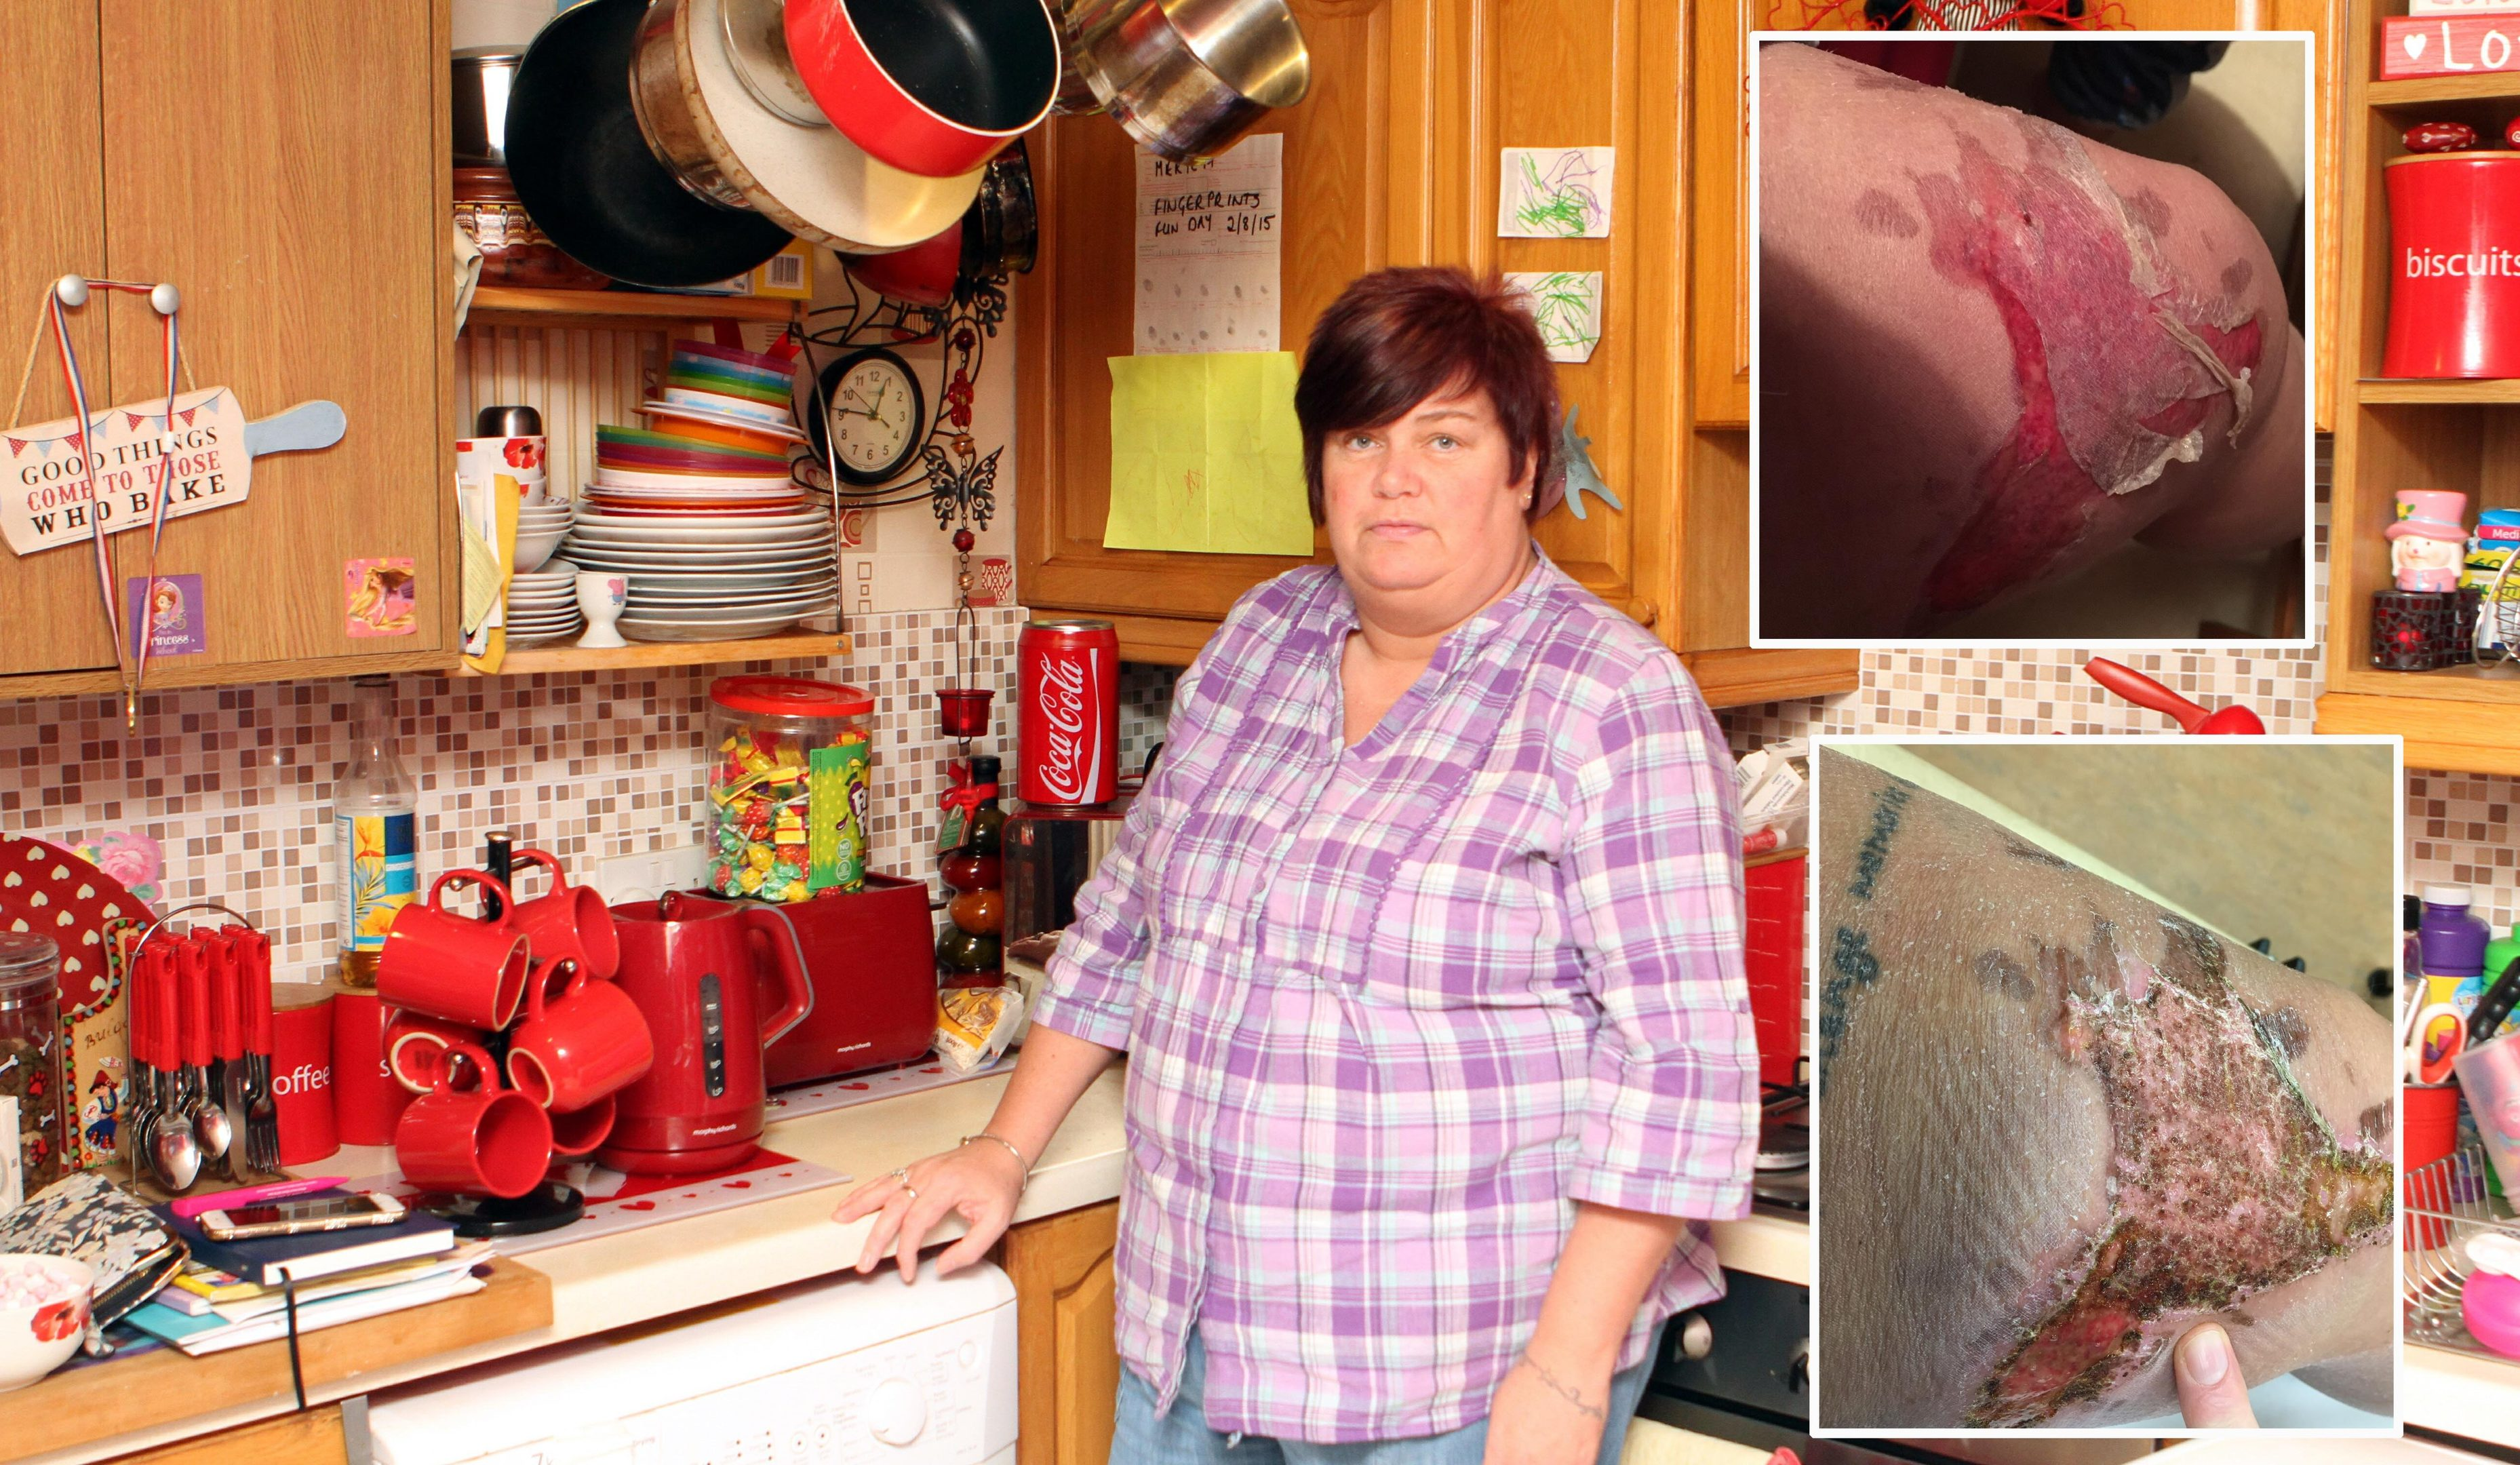 Jean Lawson in the kitchen where the incident took place and, right, her injuries.